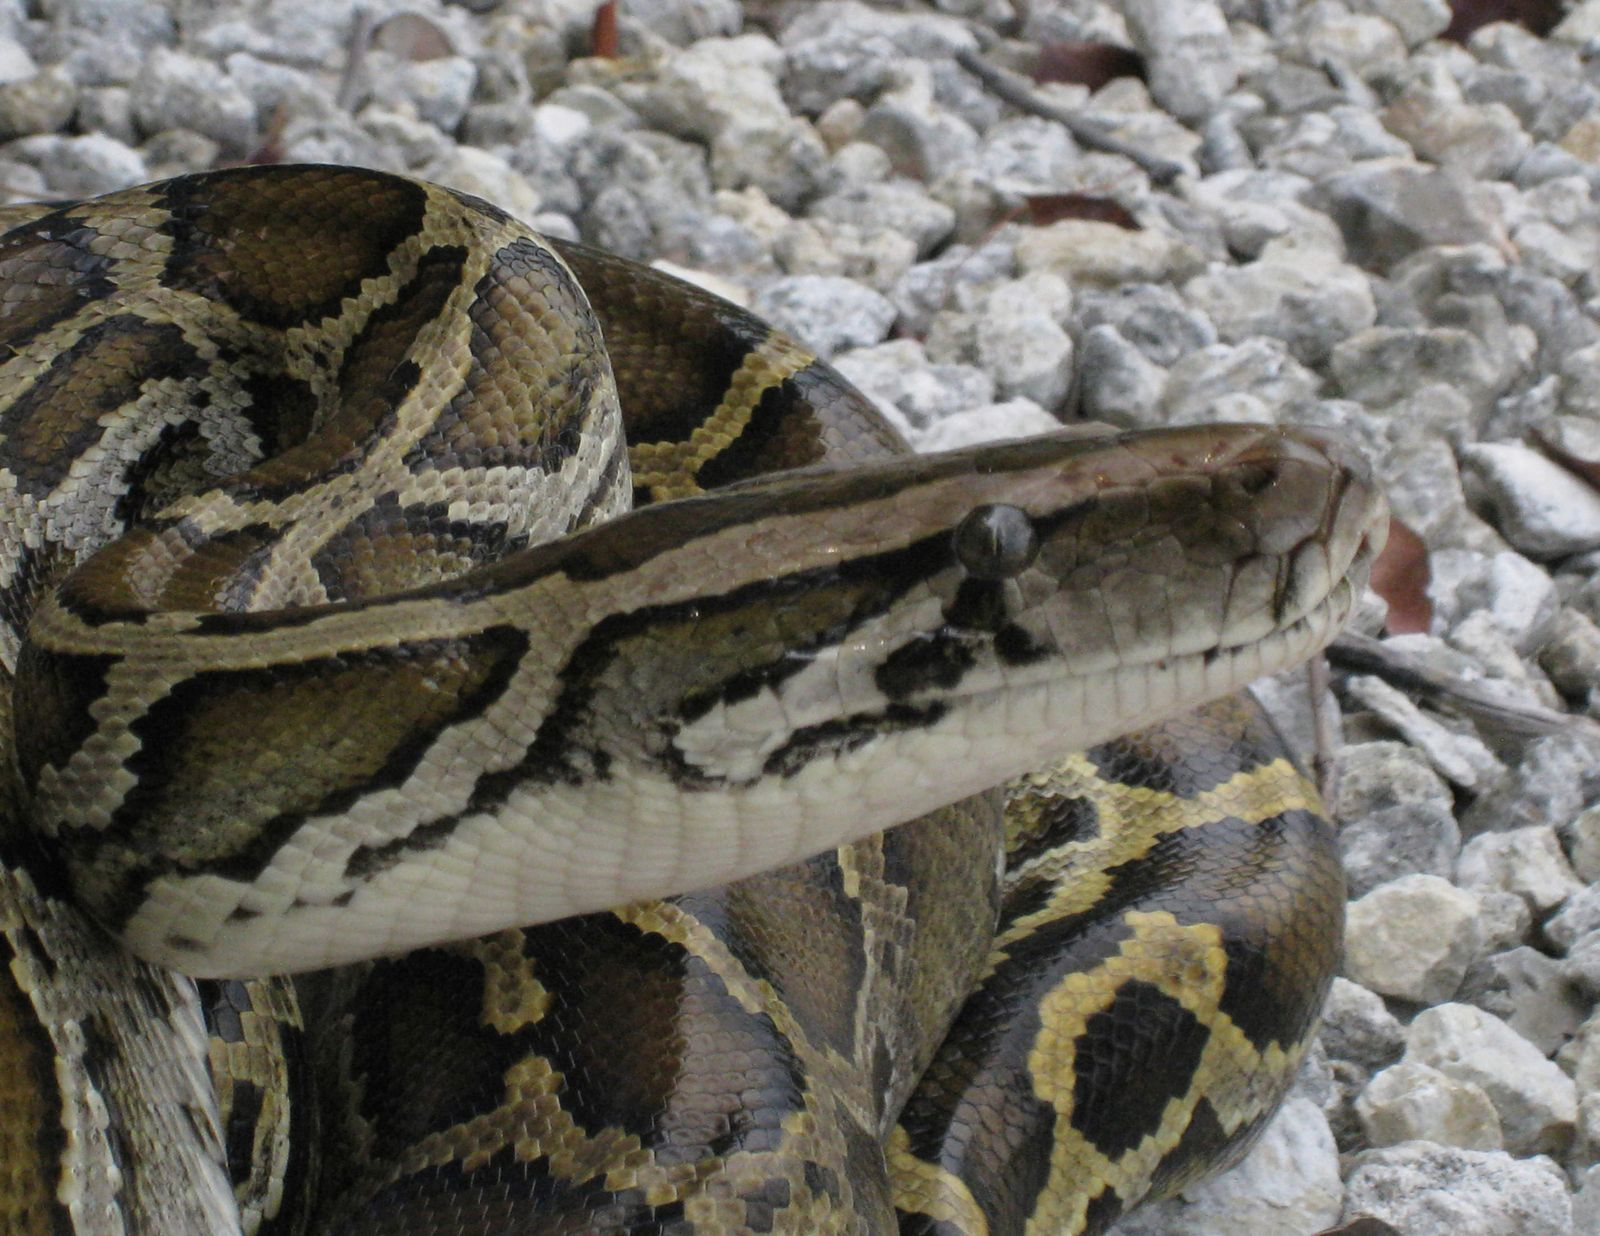 Stopping a Burmese Python Invasion